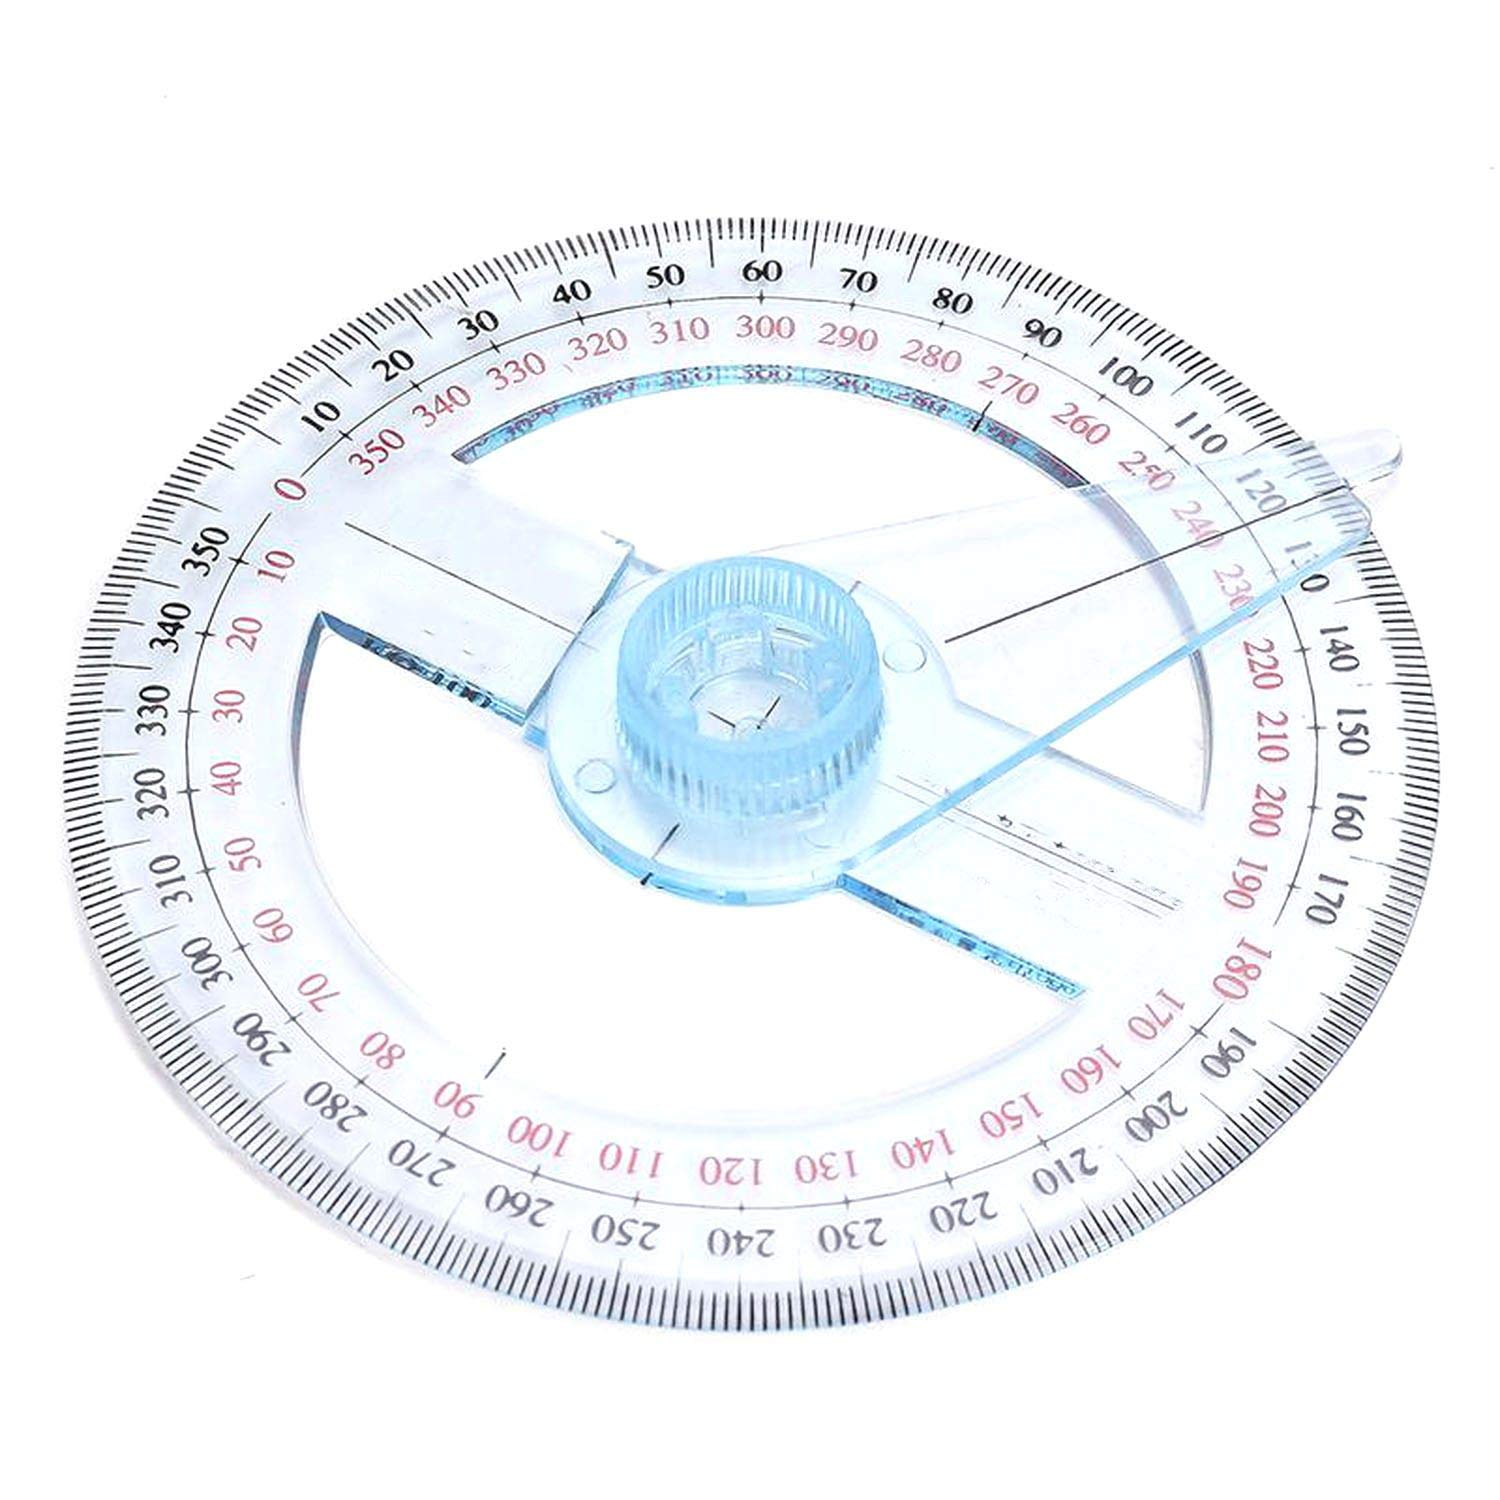 Portable Diameter of 10cm Plastic 360 Degree Pointer Protractor Ruler Angle Swing Arm for School Office Supplies,1 Pc by lucky-eye